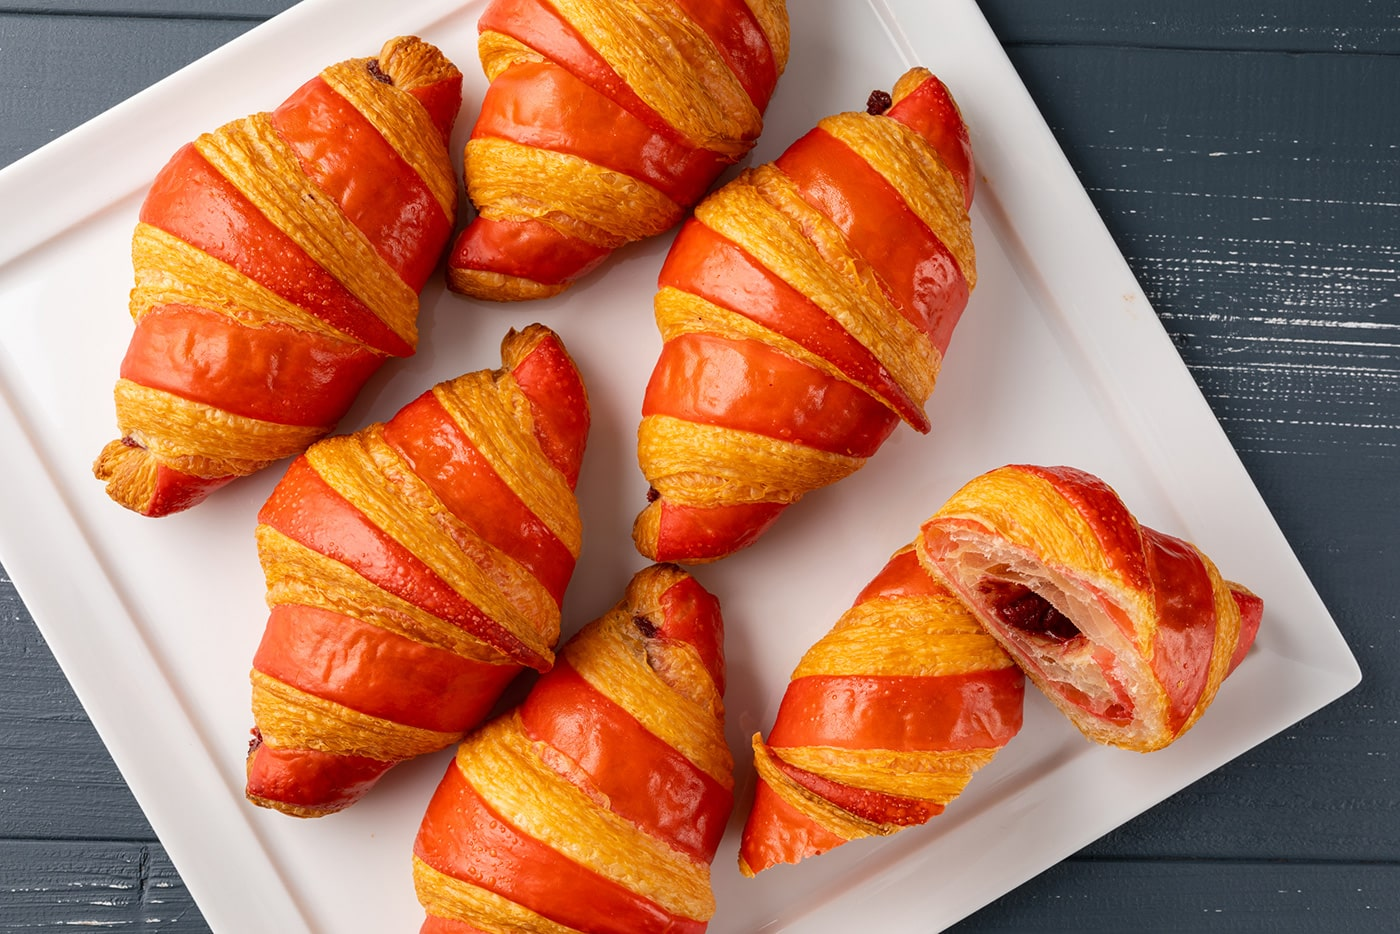 Strawberry Chocolate Croissants 1400